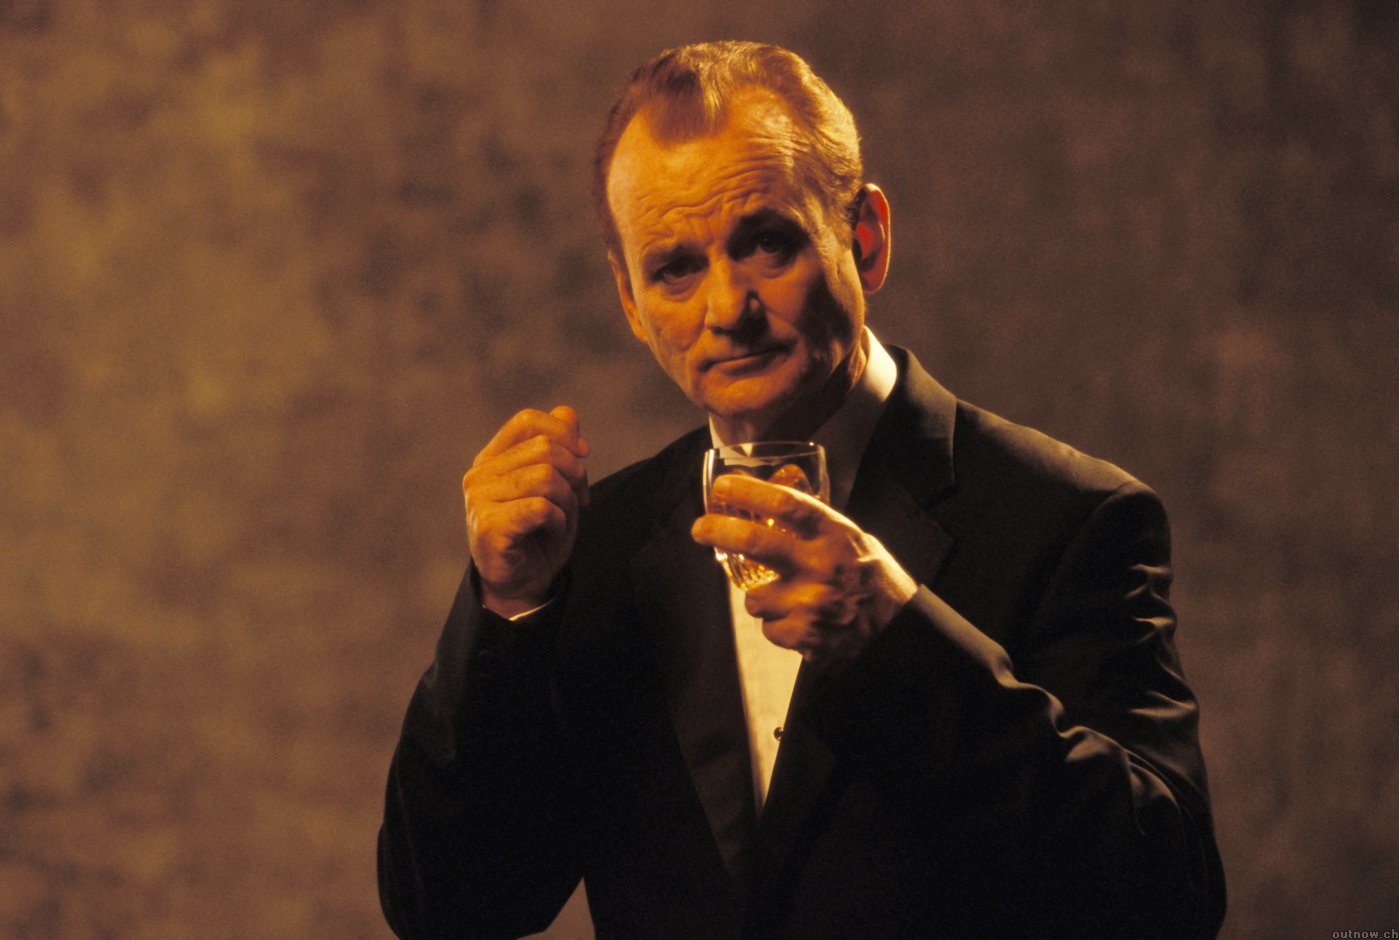 bill murray hd wallpaper - photo #12